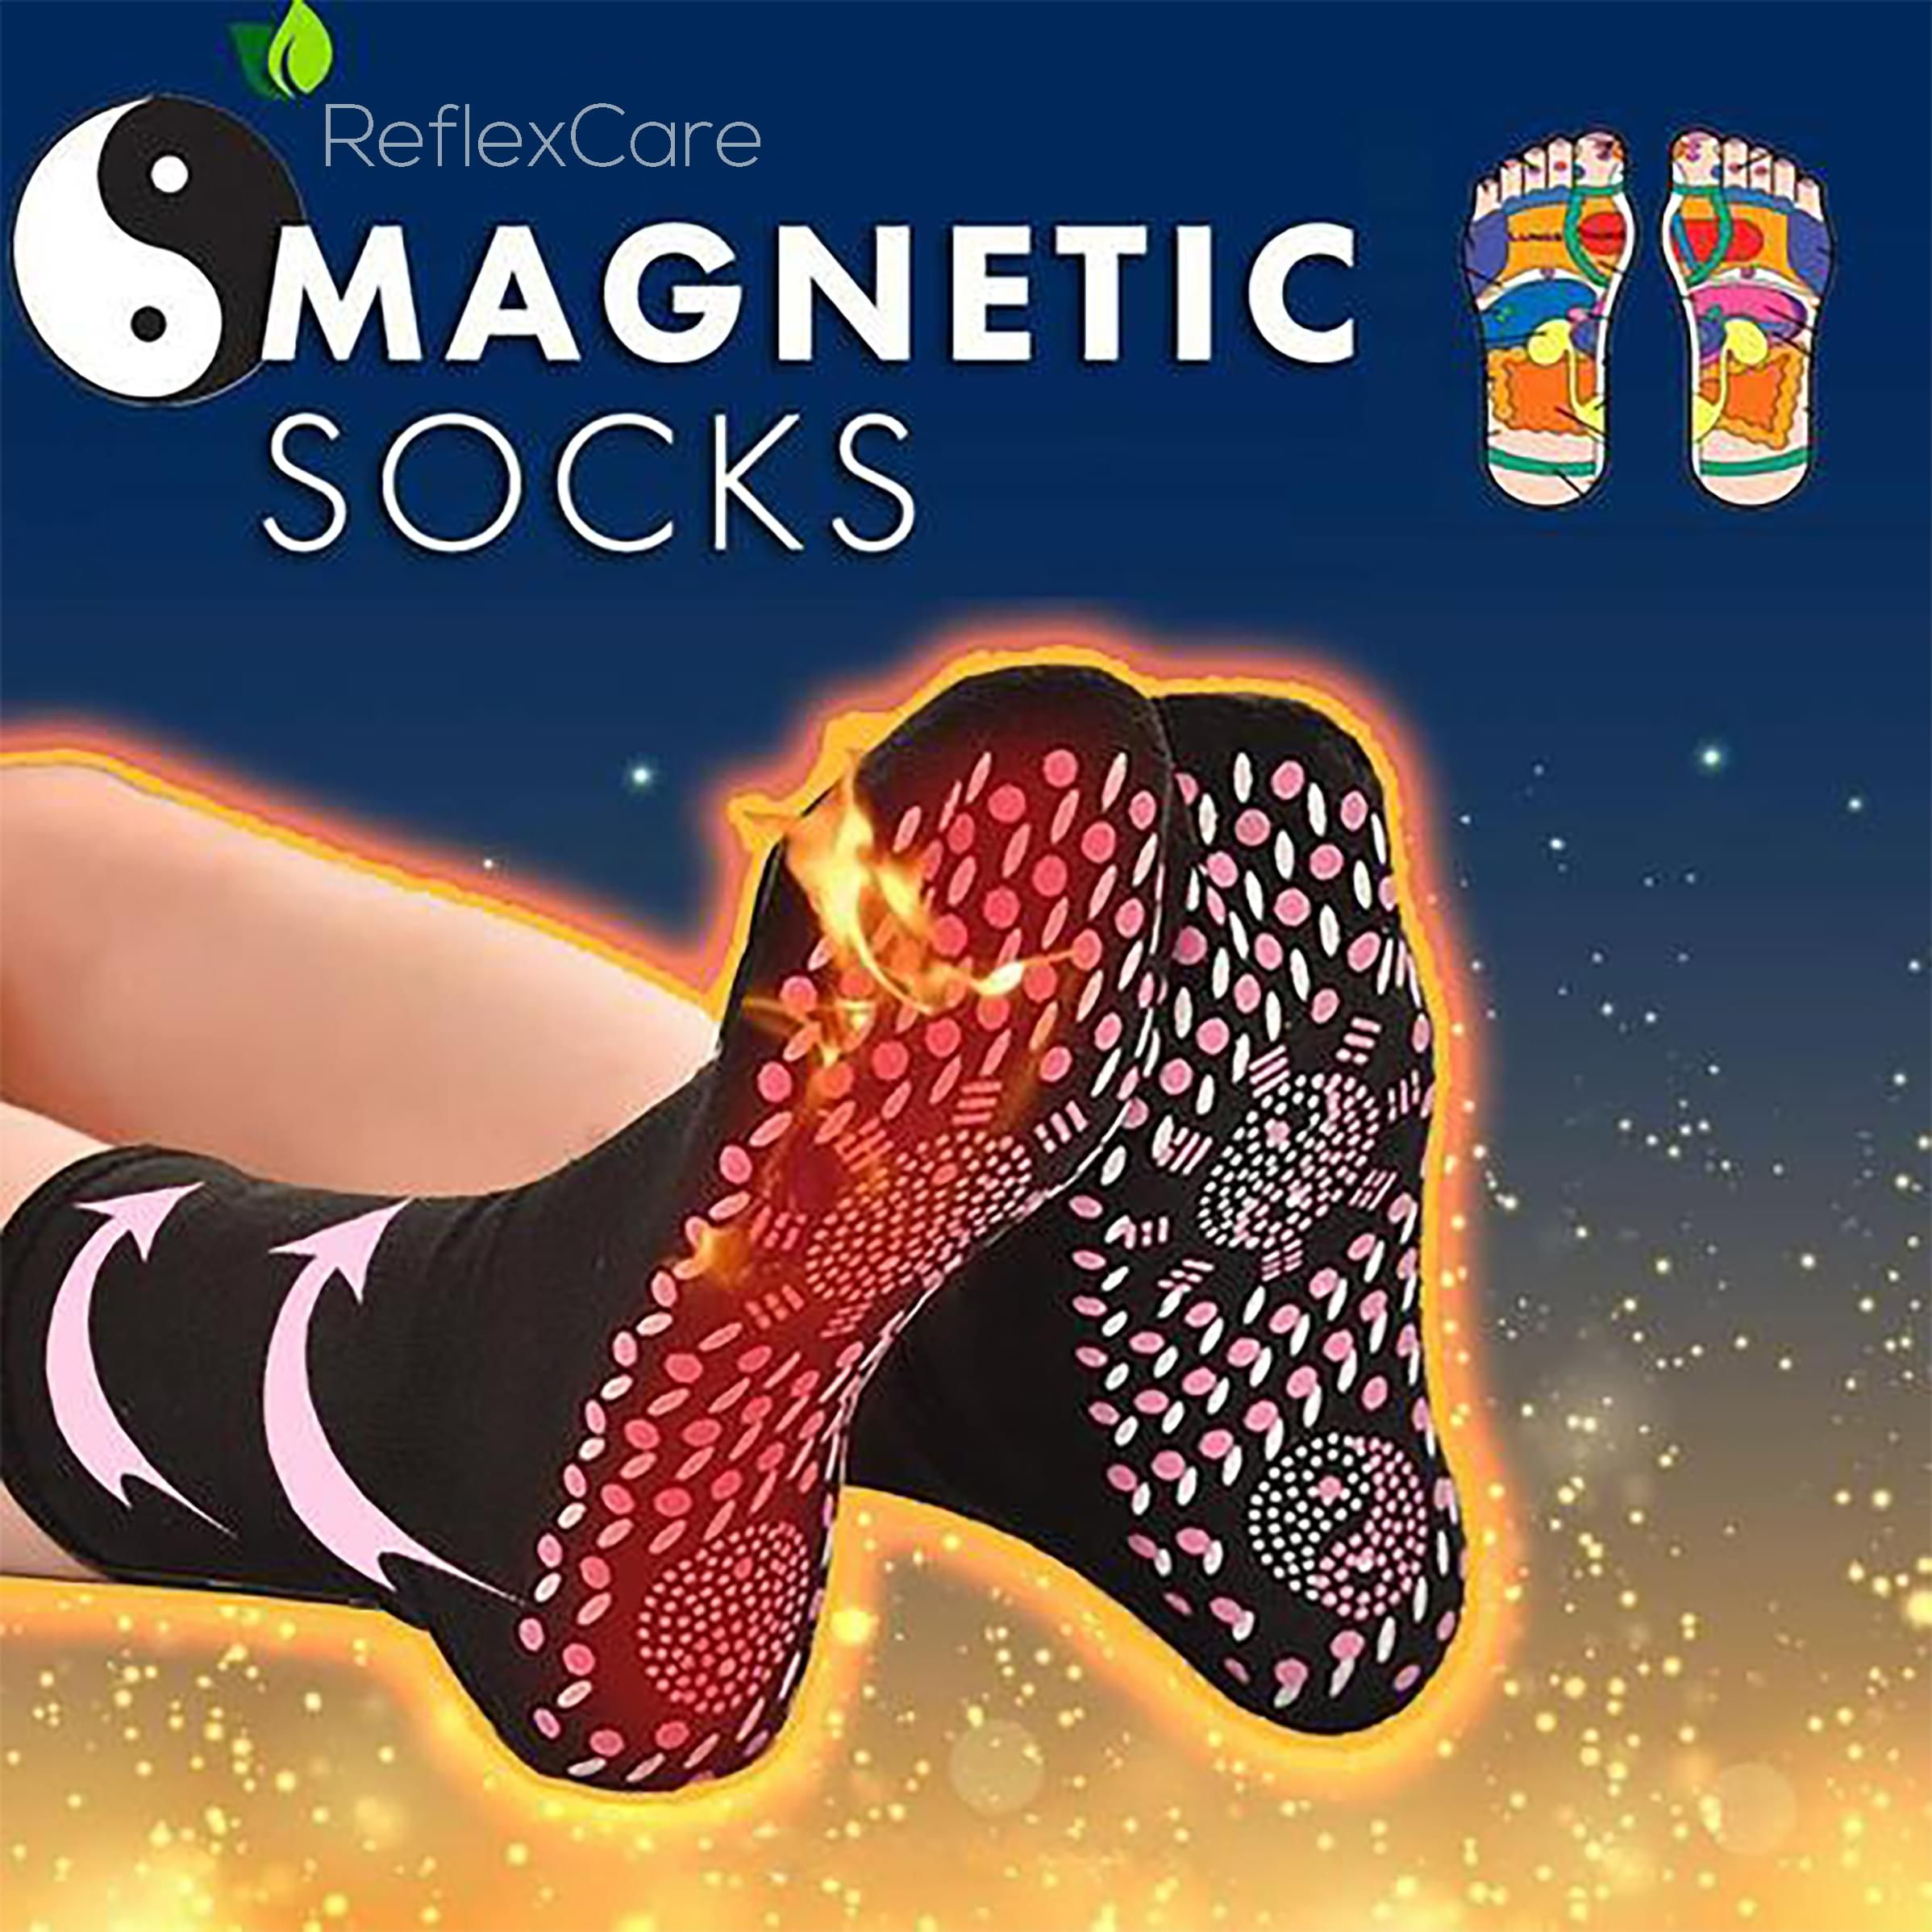 Relief Pain Cotton Magnetic Therapy Foot Care Feet Comfort Self Heating Socks